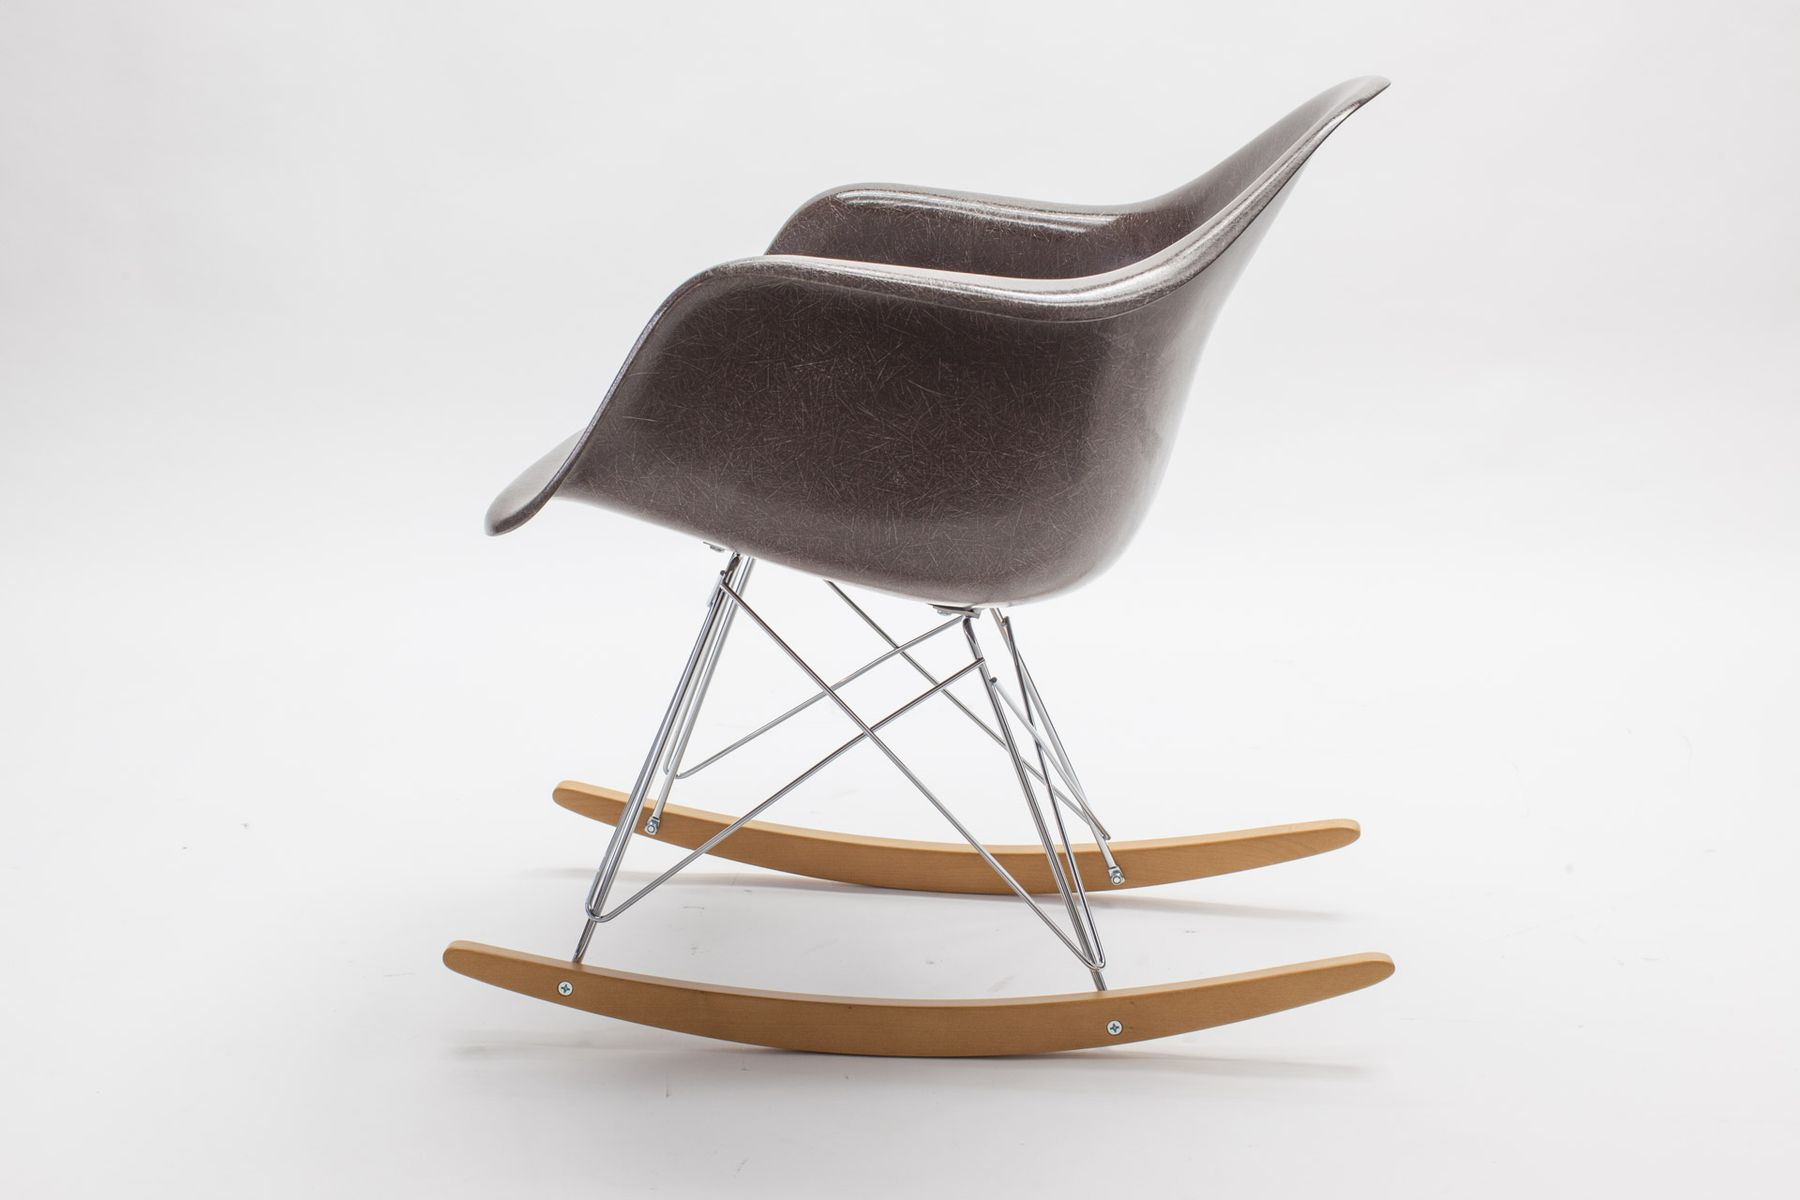 Sedia A Dondolo Rar Eames : Rocking chair rar eames. beautiful rocking chair rar eames with